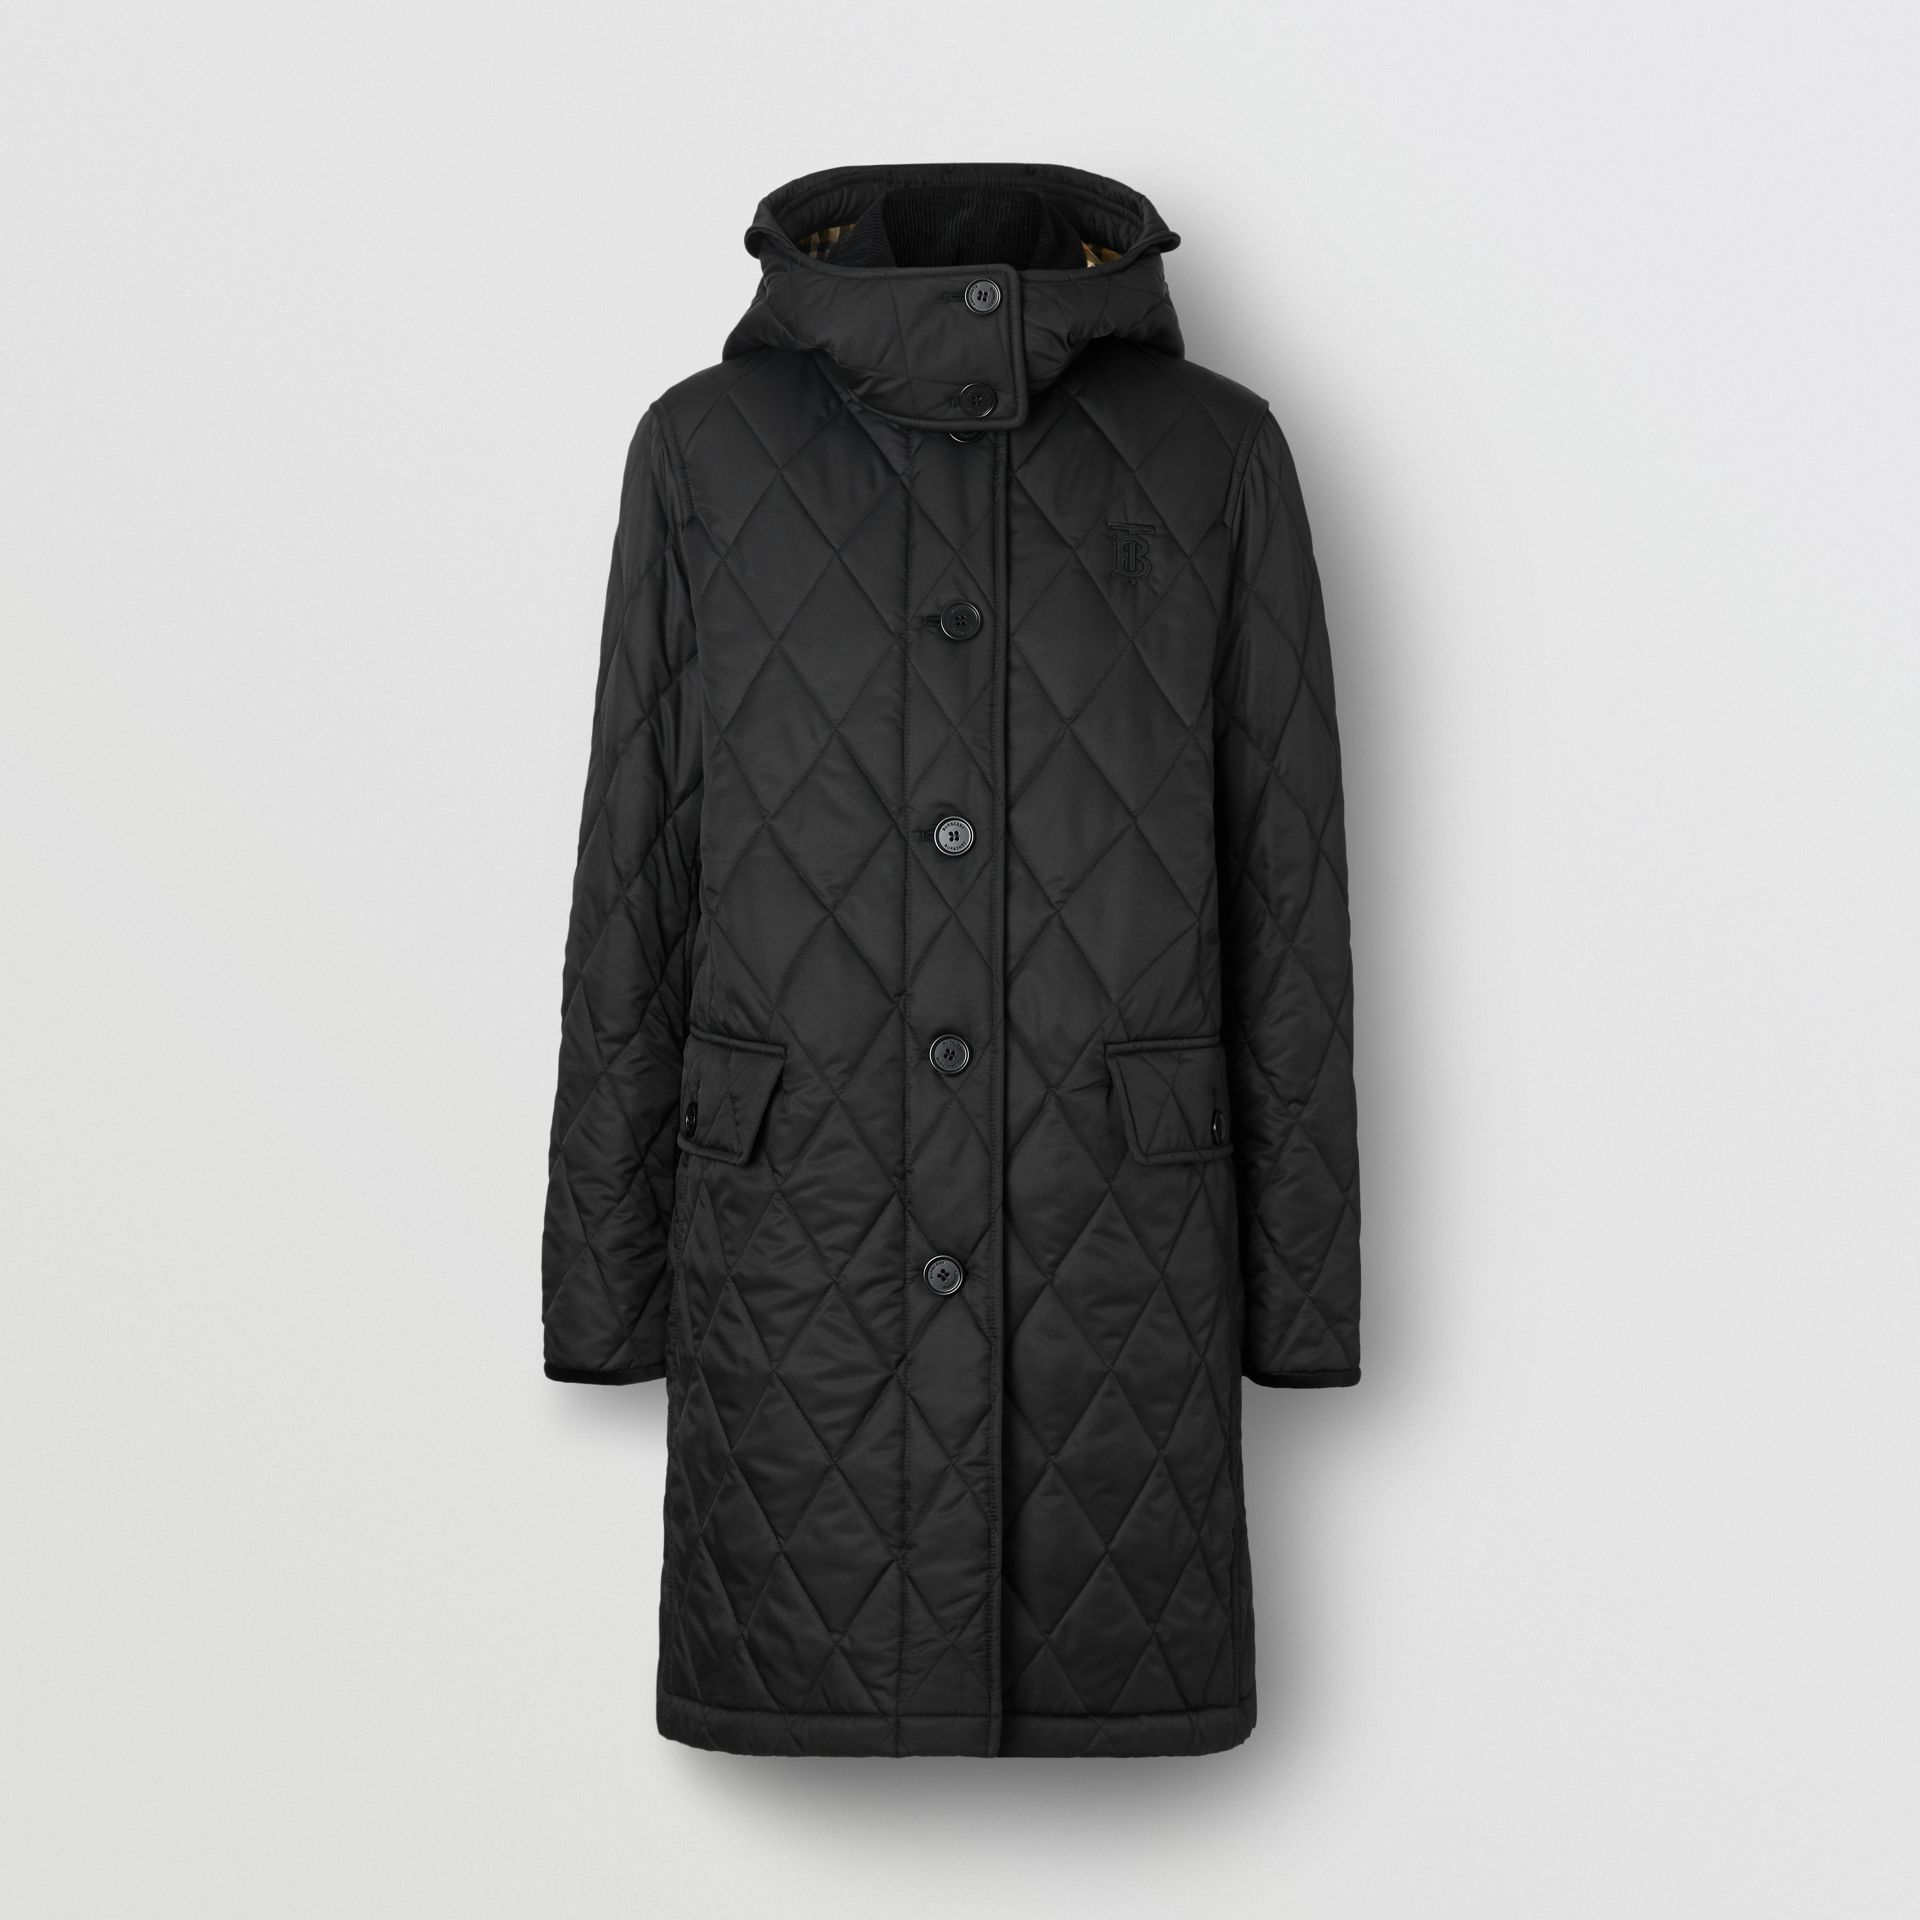 Detachable Hood Monogram Motif Quilted Coat in Black - Women | Burberry United Kingdom - gallery image 3